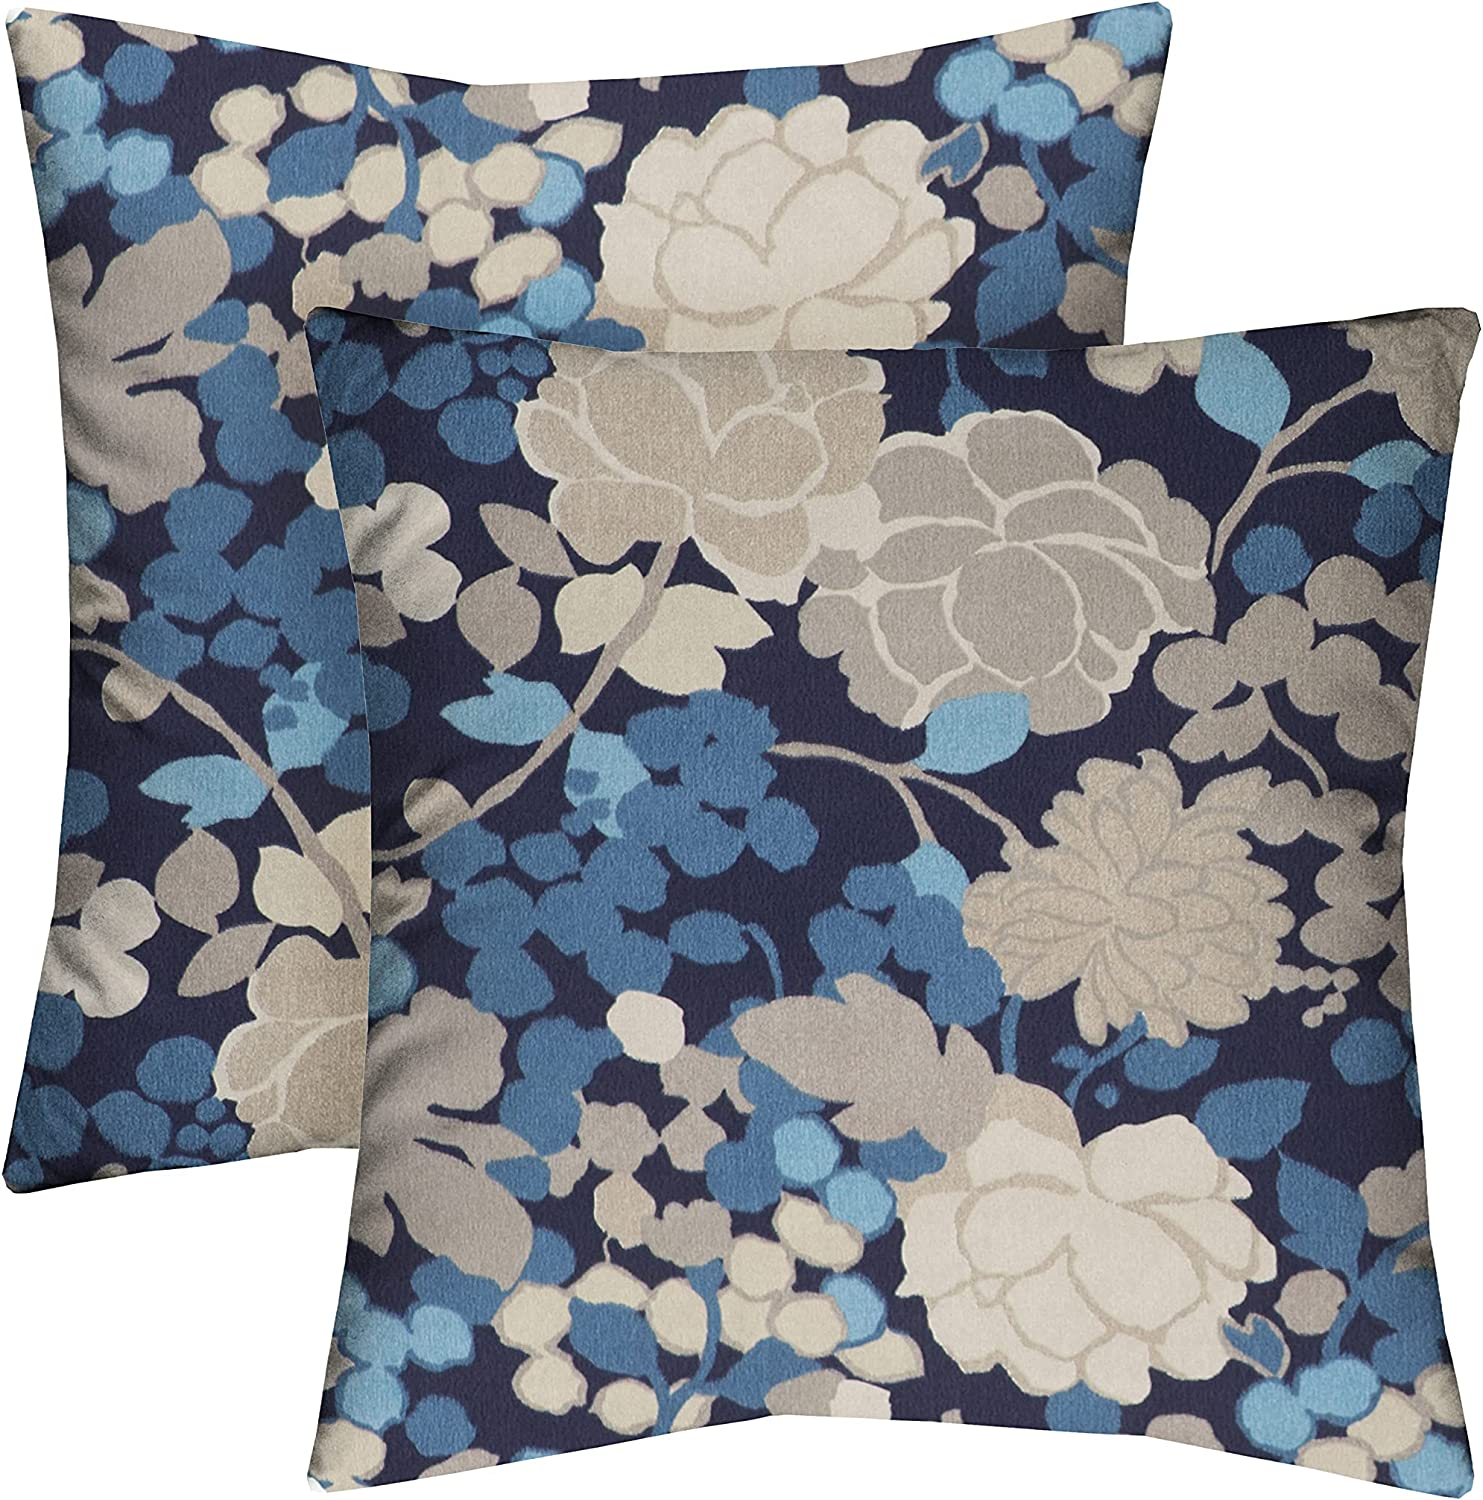 RSH Décor Indoor Outdoor Set of Super special price 24 Weather Max 40% OFF 2 Pillows Resistant